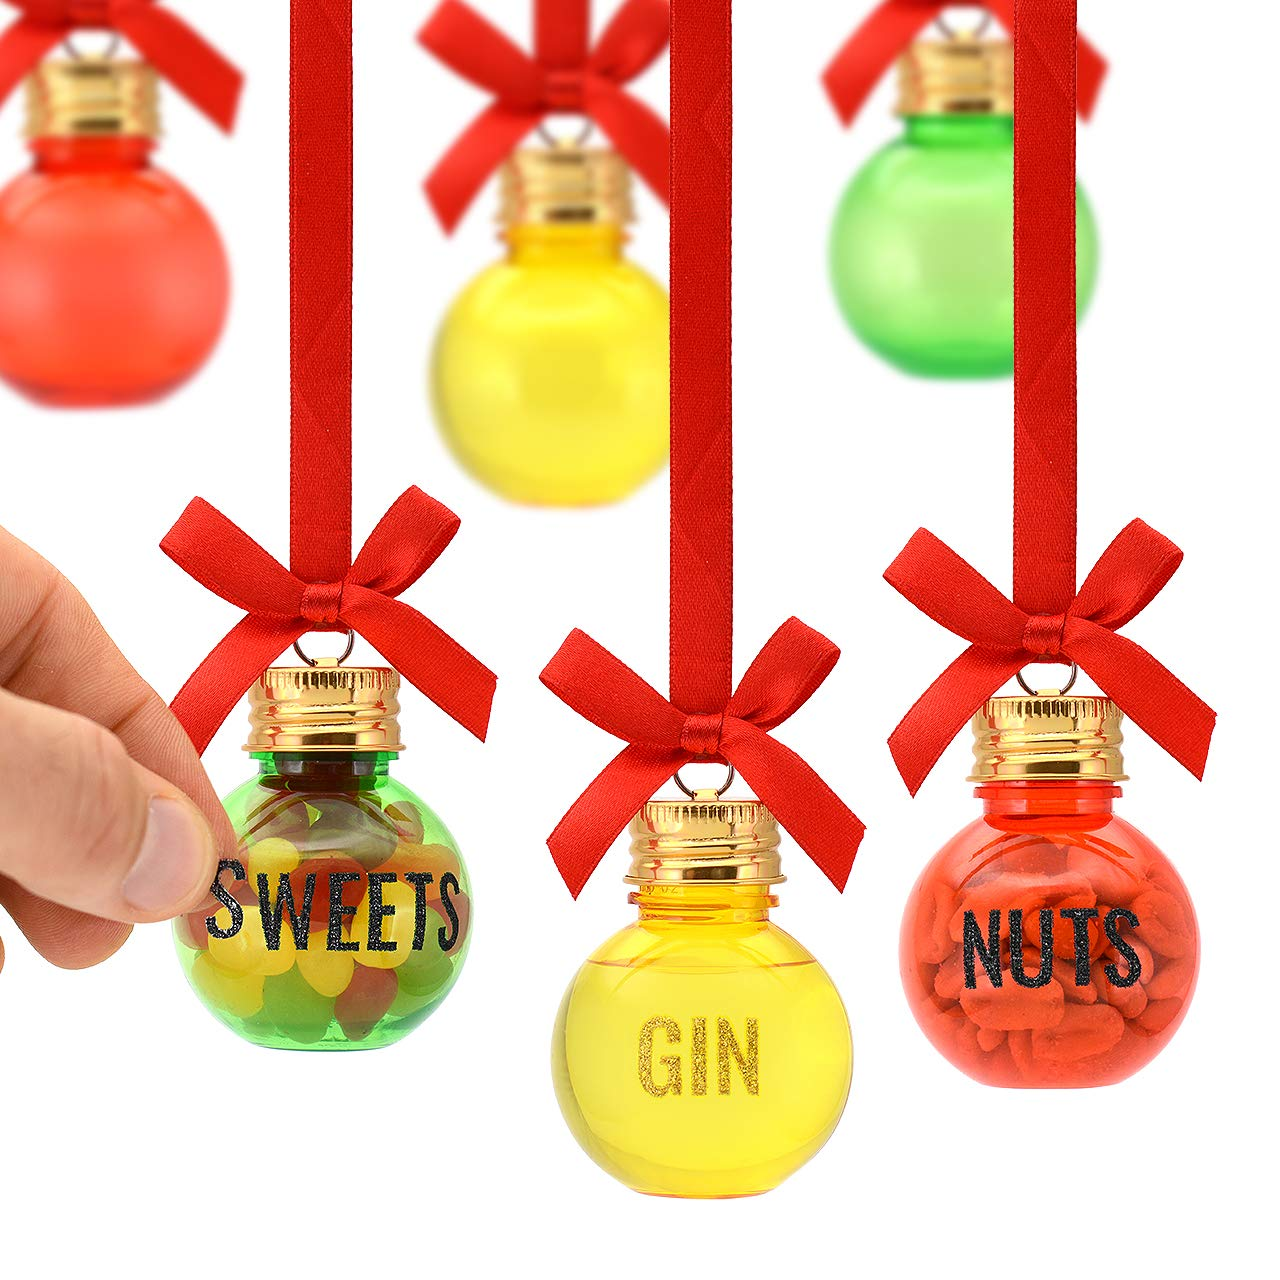 Eat, Drink and be Merry Christmas Xmas Baubles Set of 6 50ml Includes LETTER STICKERS To Personalise Fill Your Own Gift Set To Decorate With Sweets Nuts Booze Gin Vodka Whisky Rum Fillable Decorations CKB LTD